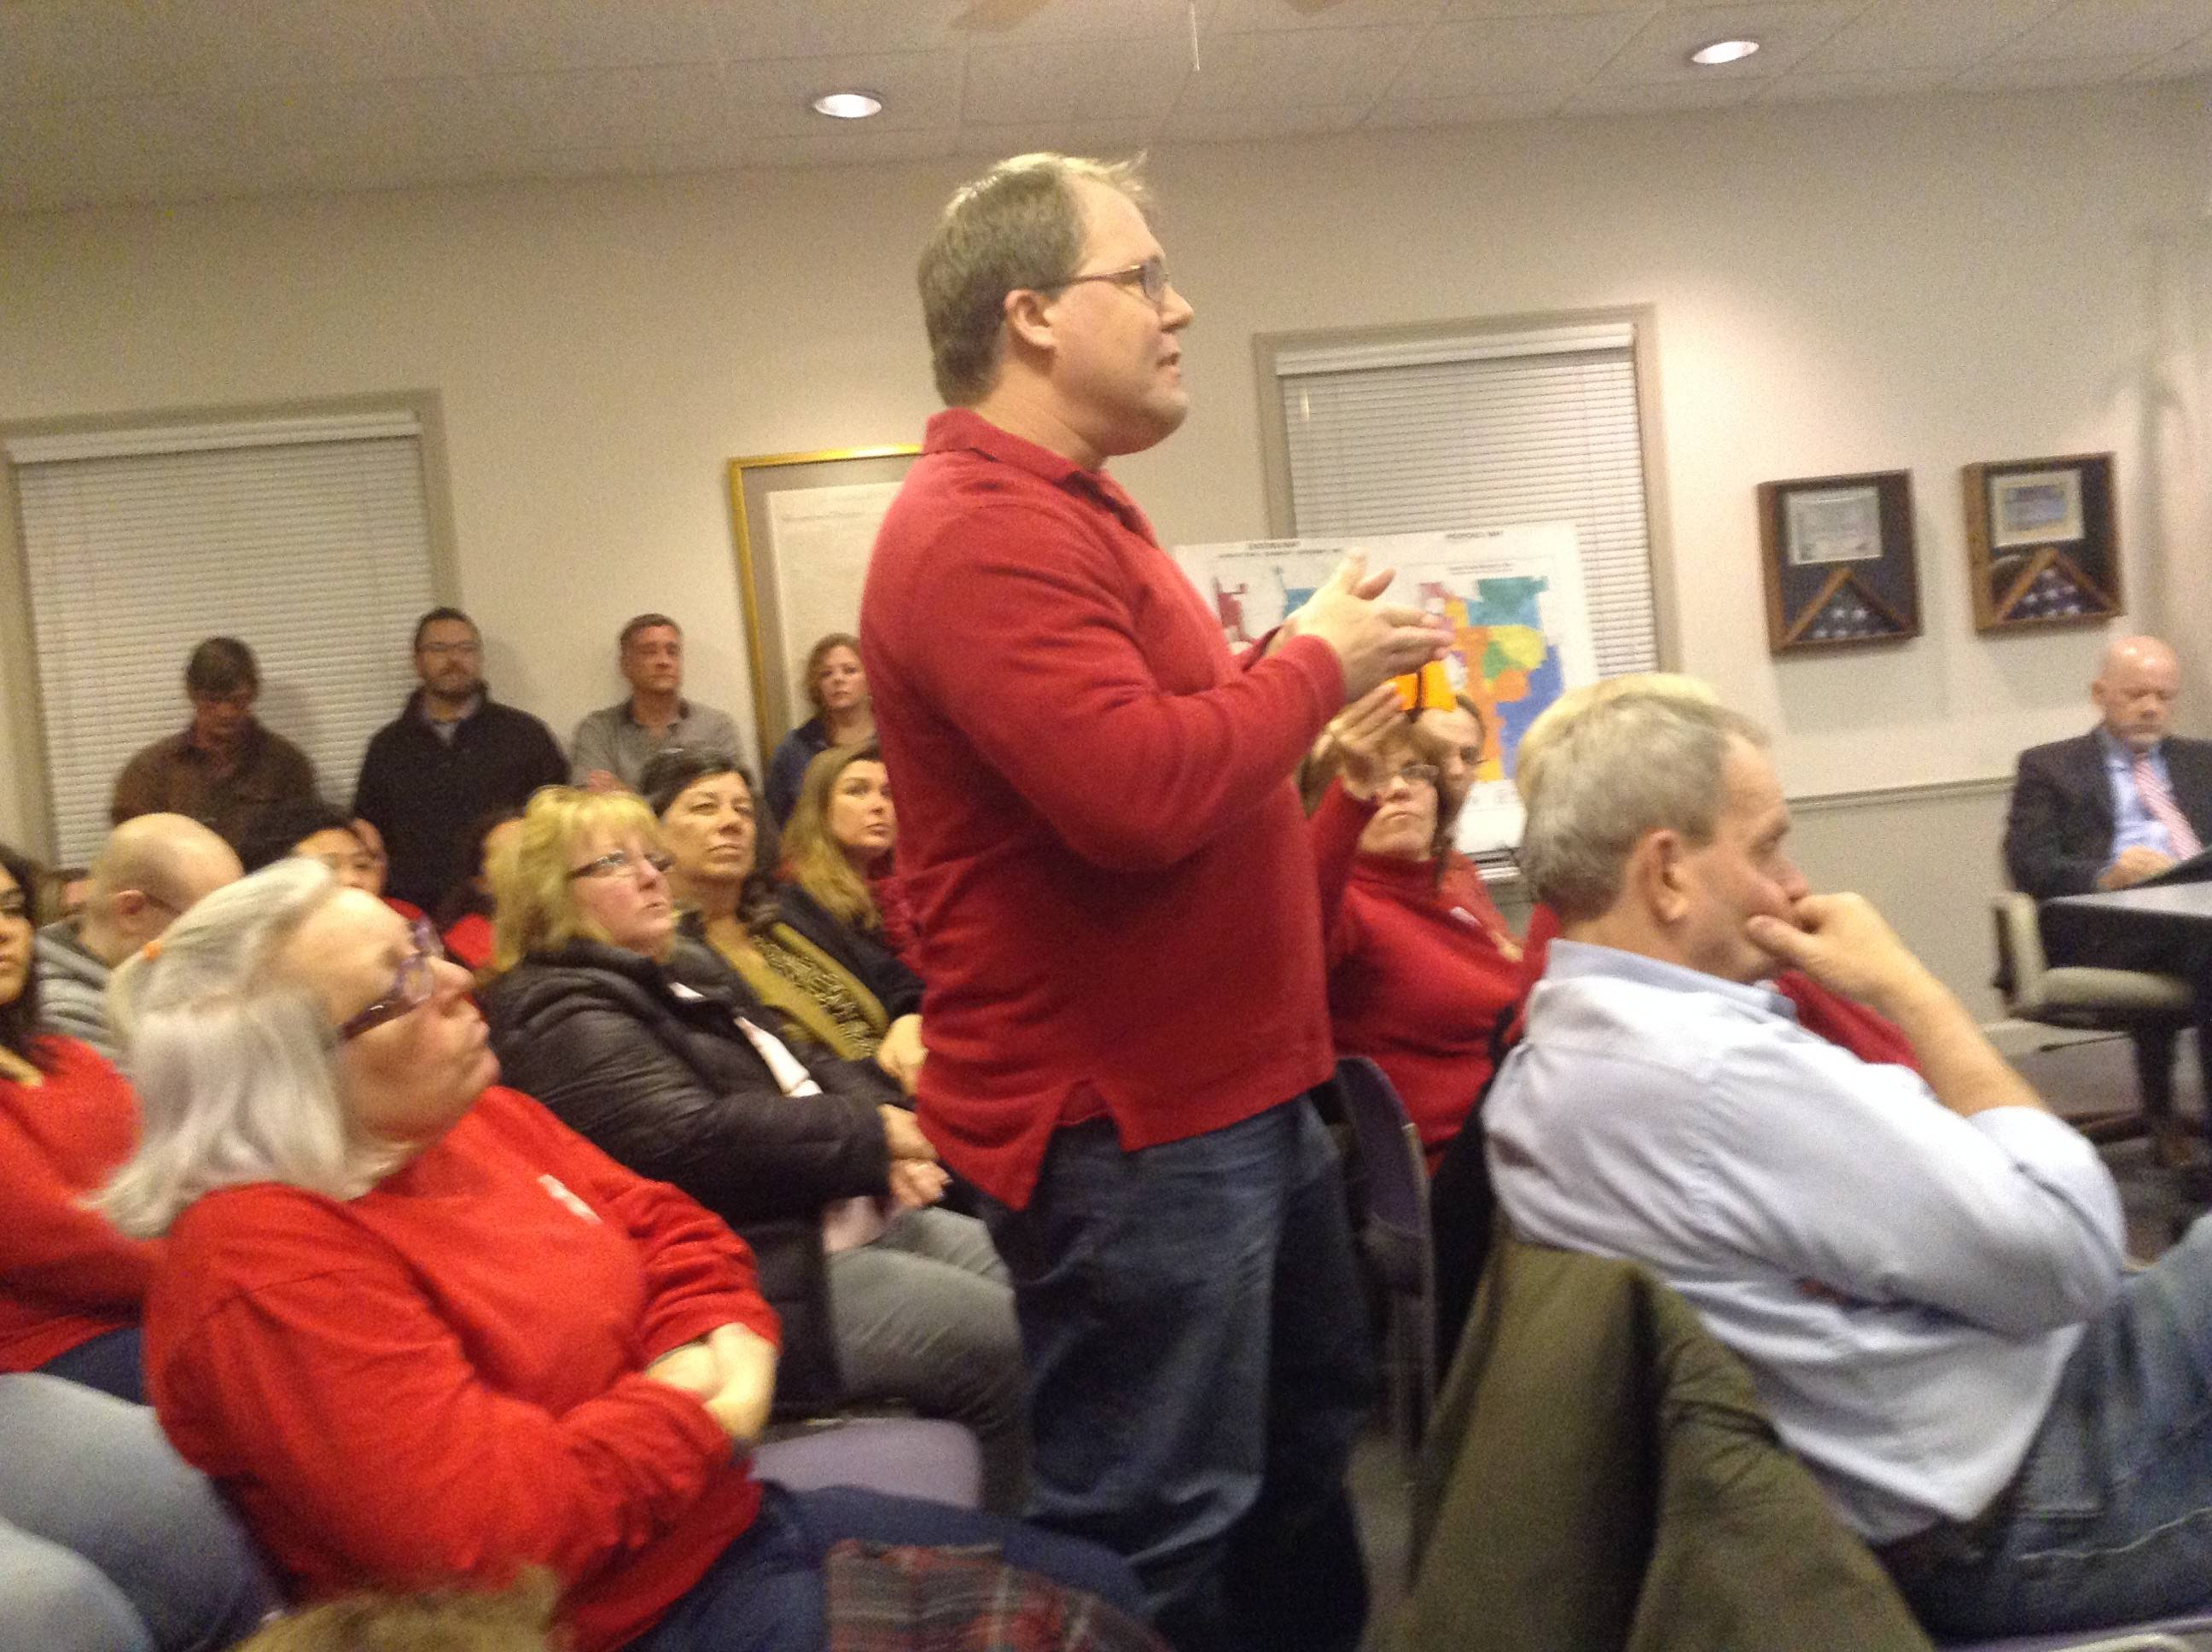 Wauconda could limit public comment, impose penalties